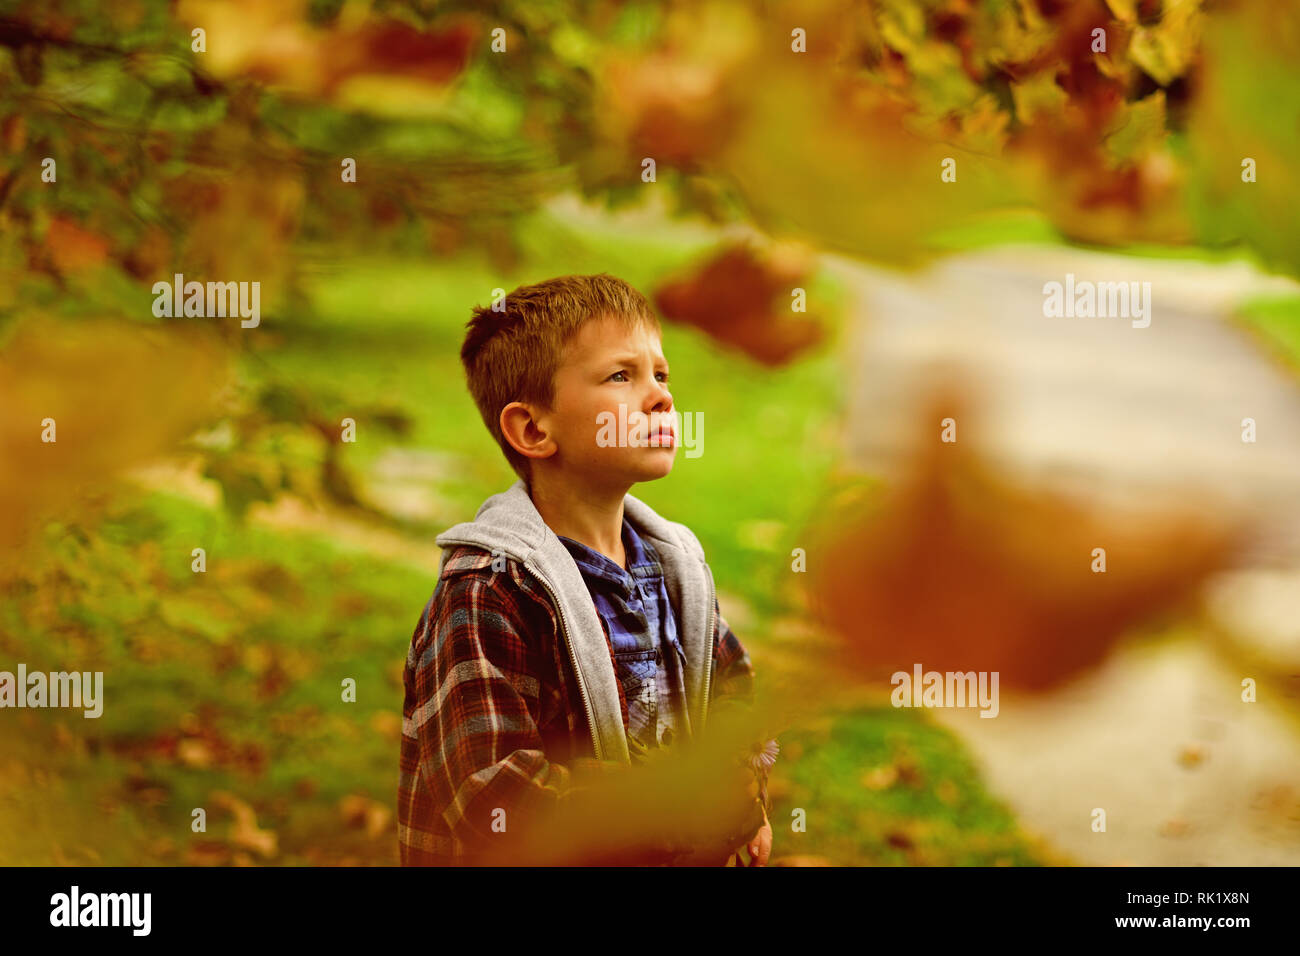 Hope and dreams. Little boy full of hope for bright future. Little boy daydreaming in garden. I do hope - Stock Image